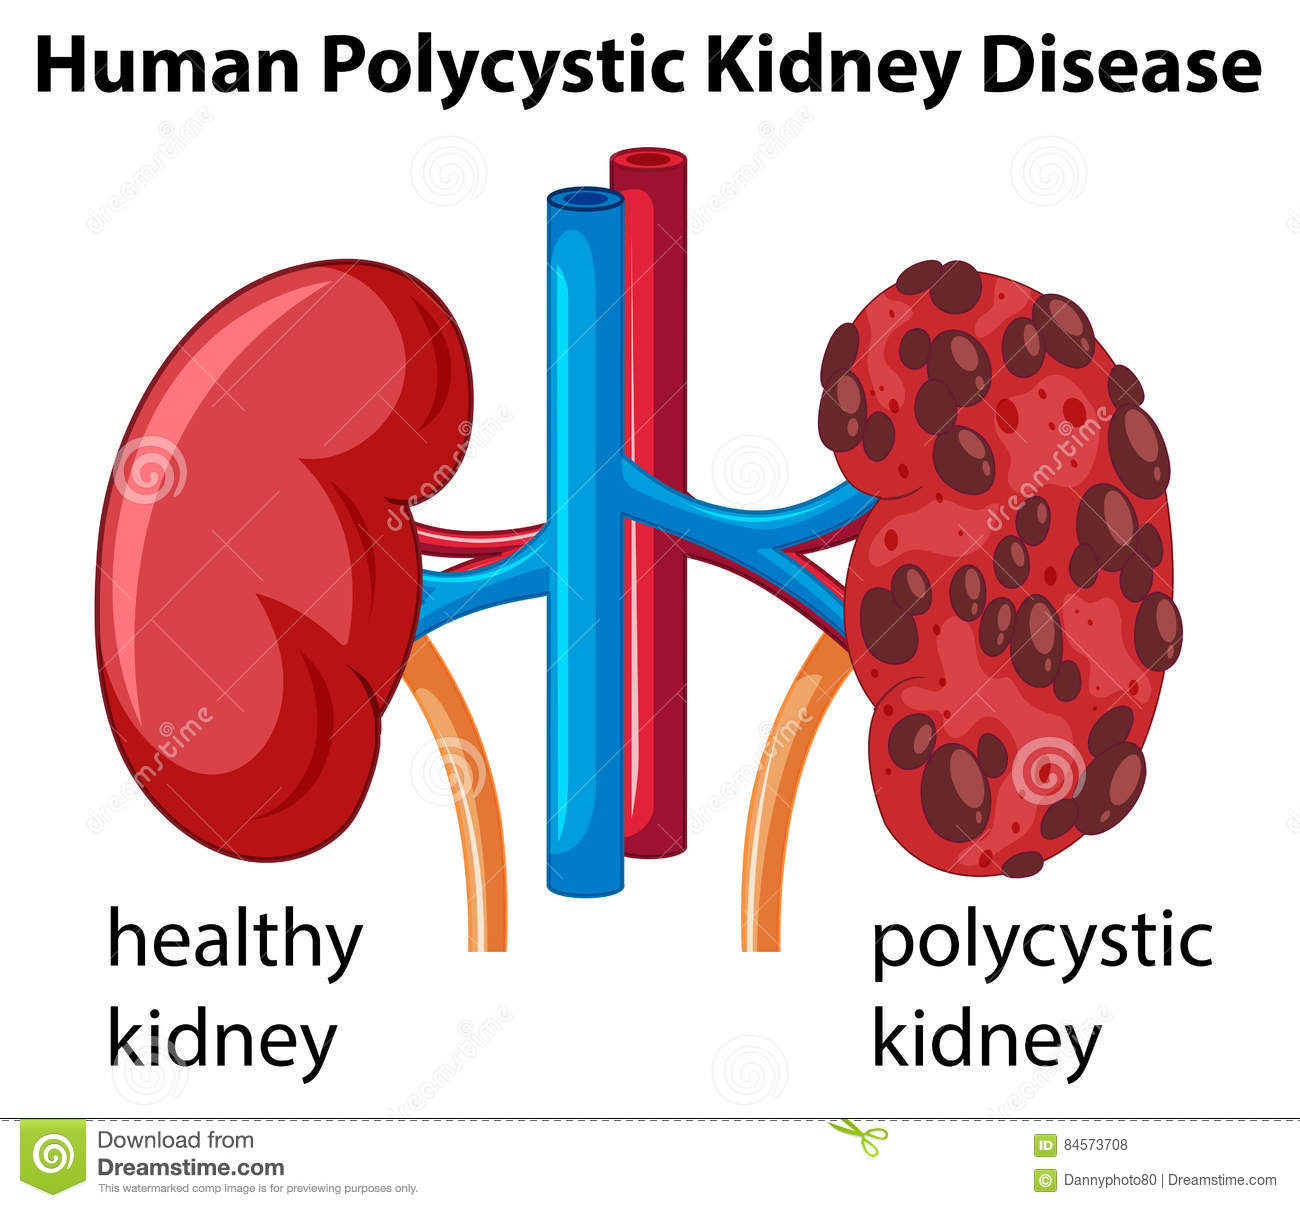 hight resolution of diagram showing human polycystic kidney disease